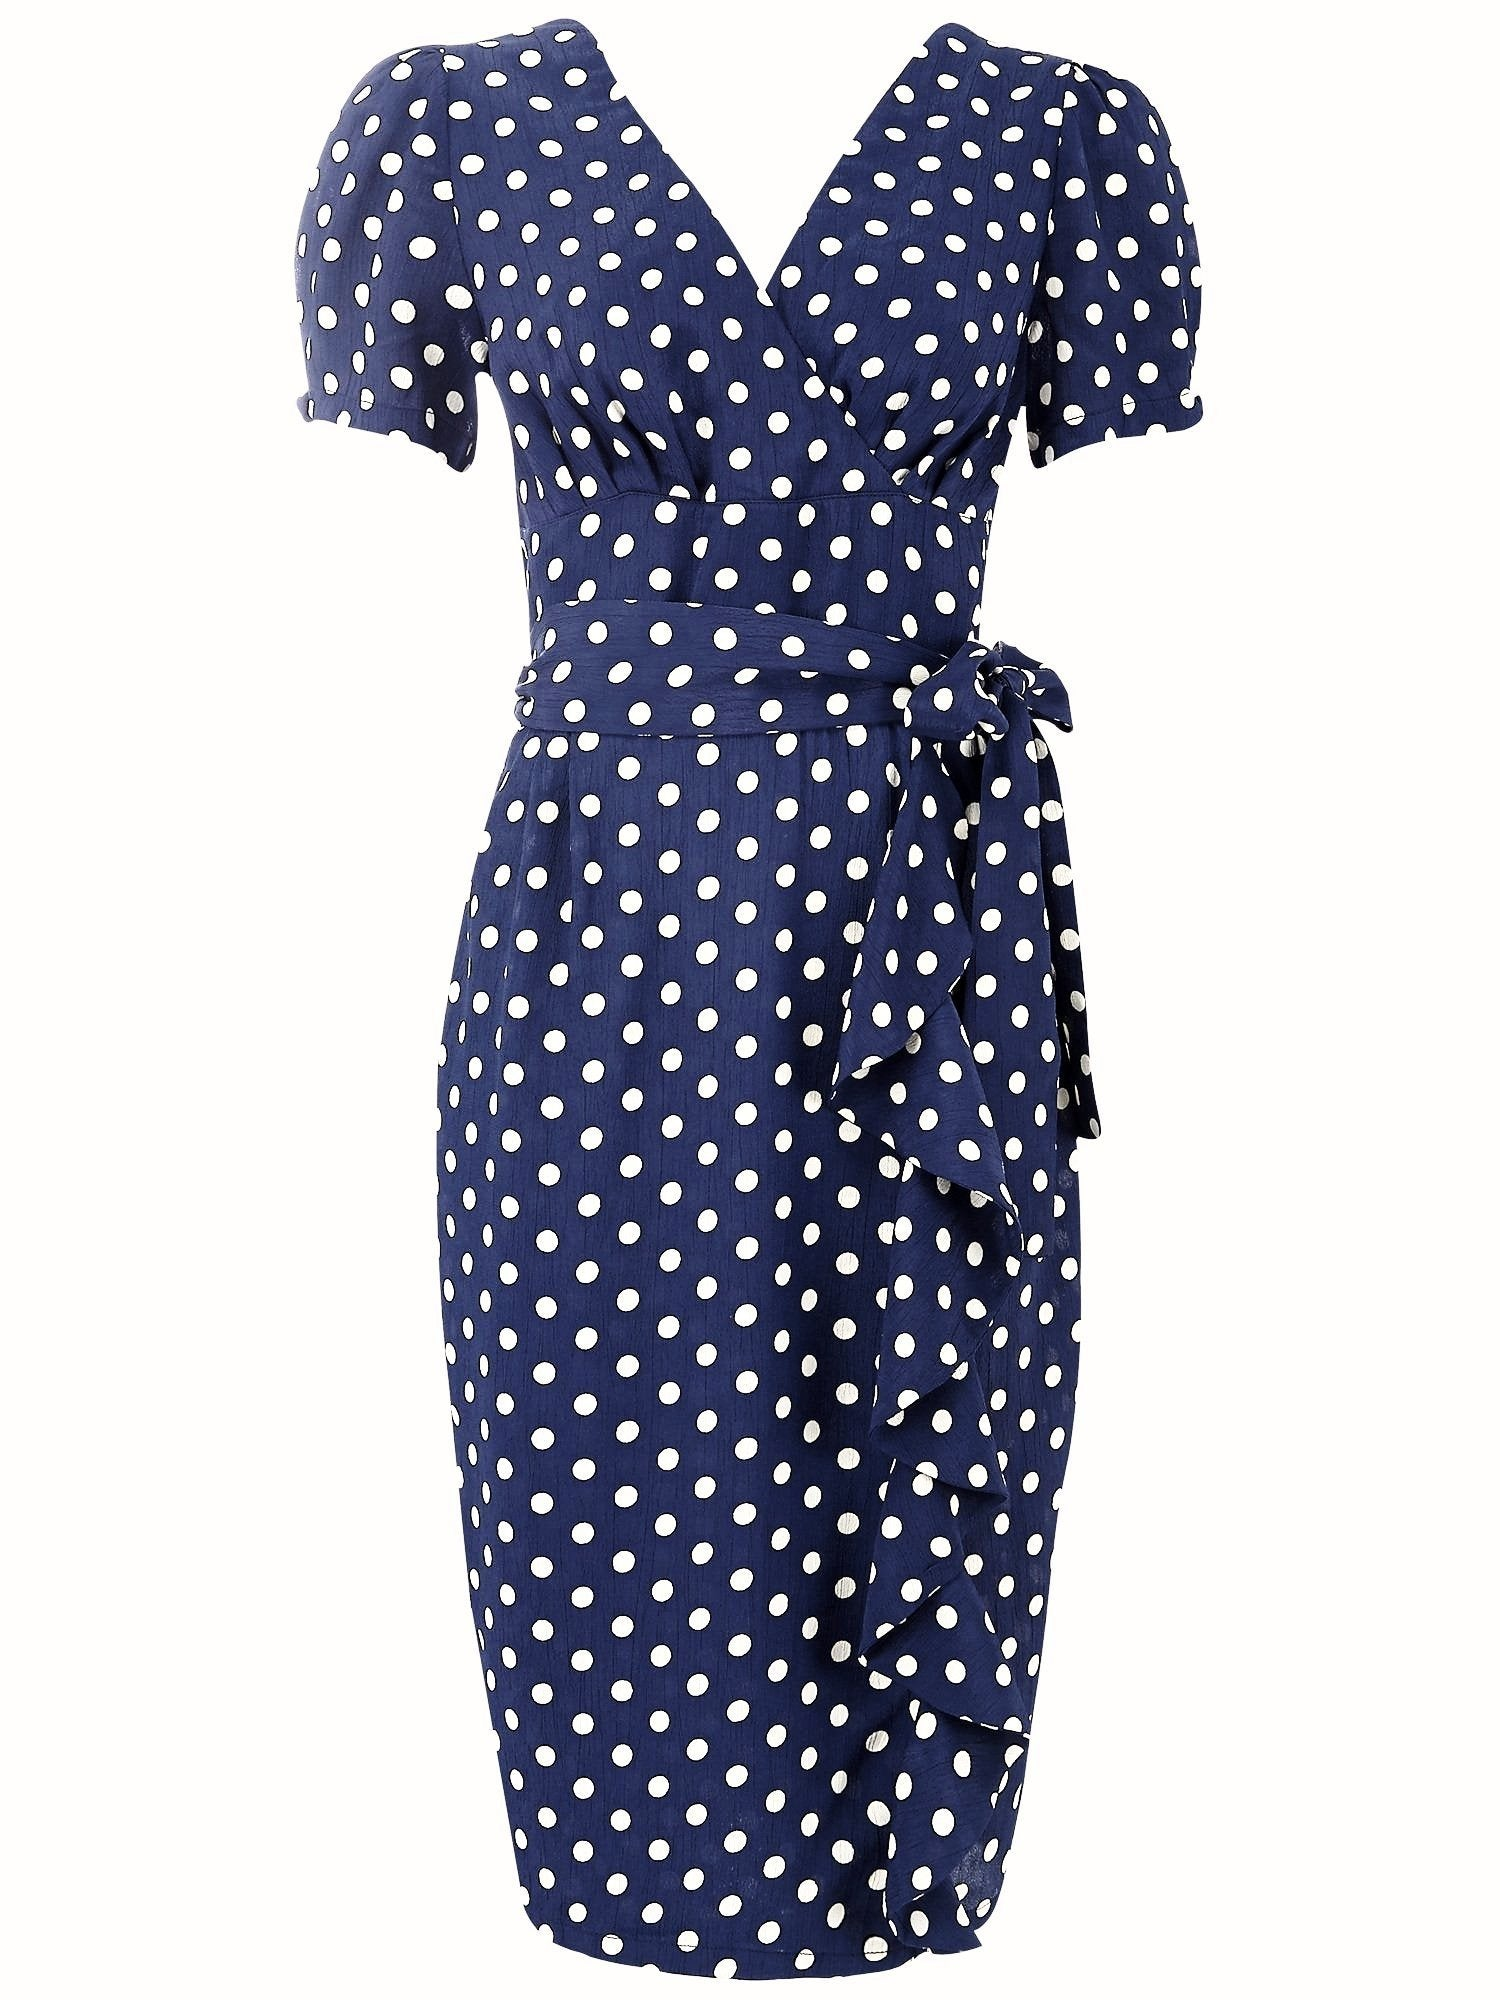 1940s Dresses | 40s Dress, Swing Dress, Tea Dresses Lilian Dress in Navy with Polka Dot Spot Classic  Authentic 1940s Vintage Style £89.00 AT vintagedancer.com